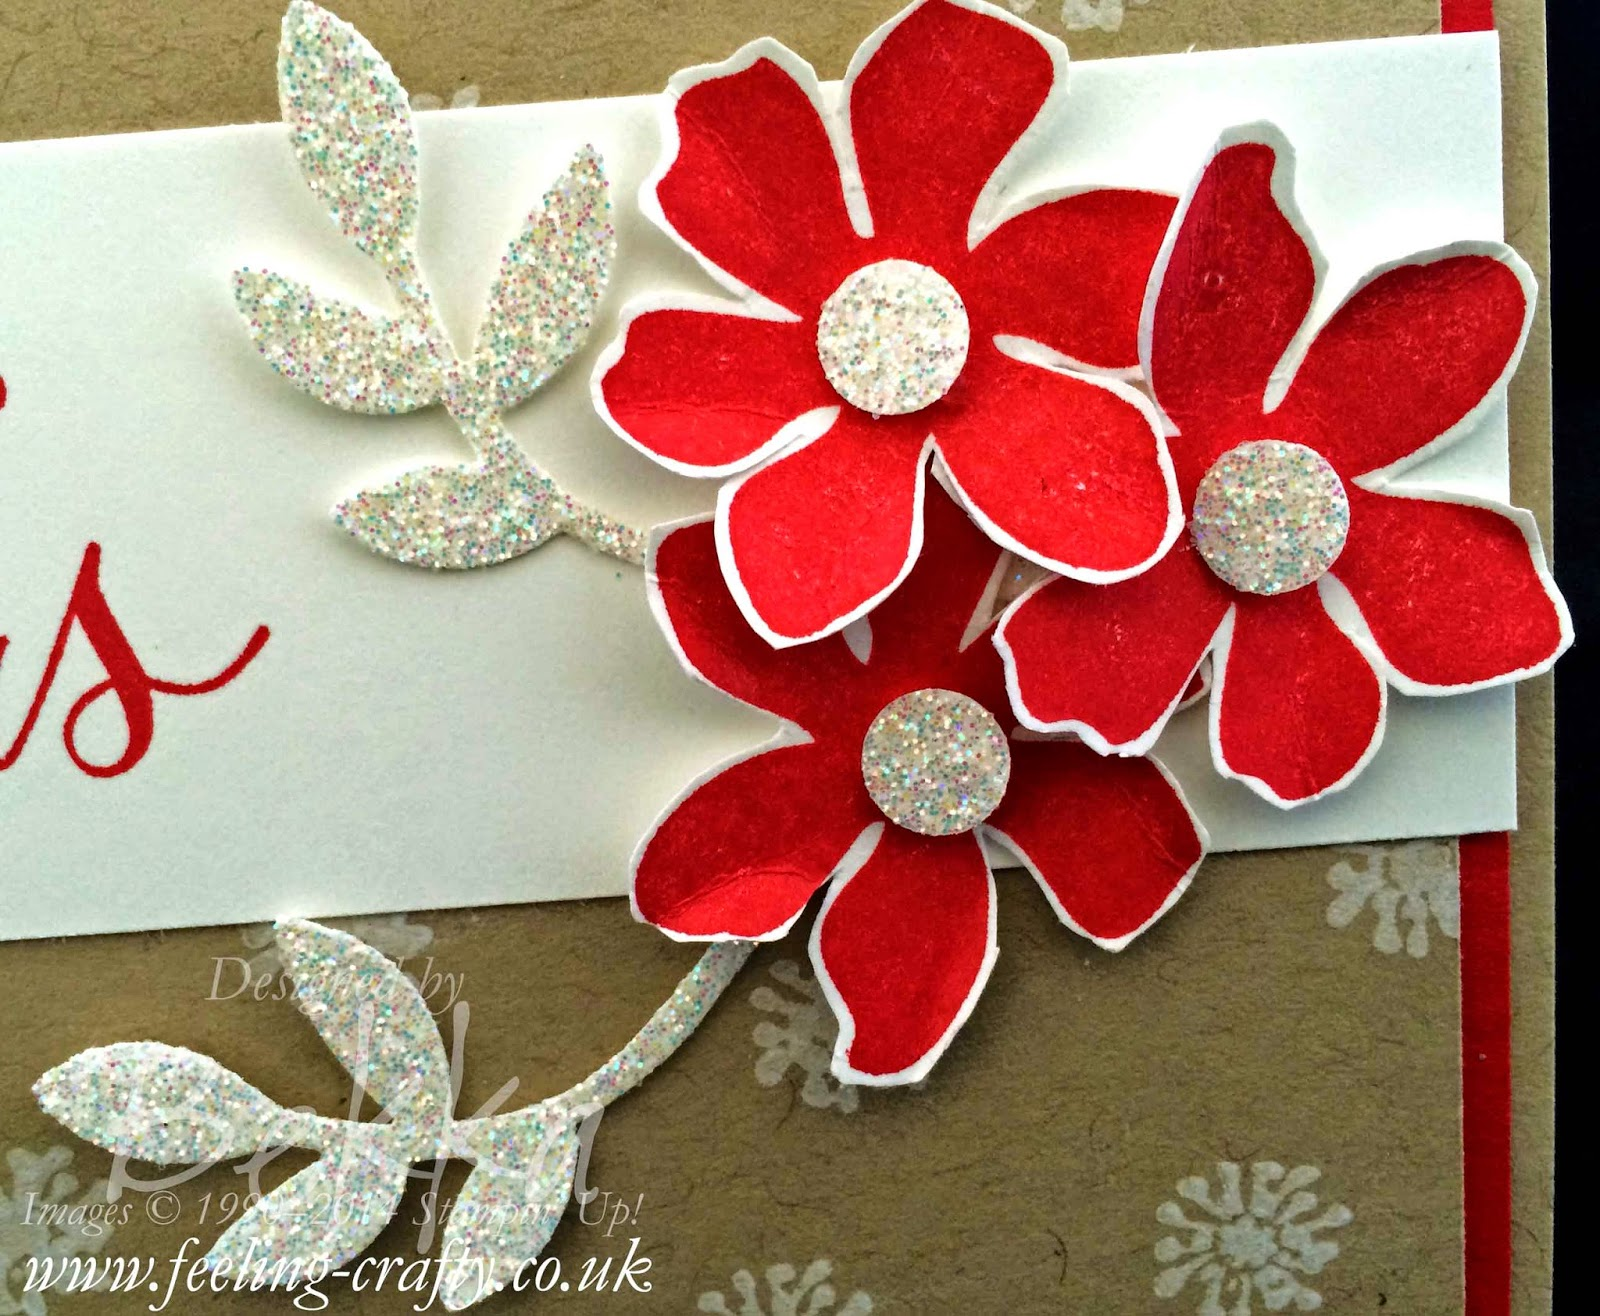 Make your own Chritsmas Cards this year - this one uses Stampin' Up! supplies which you can get here